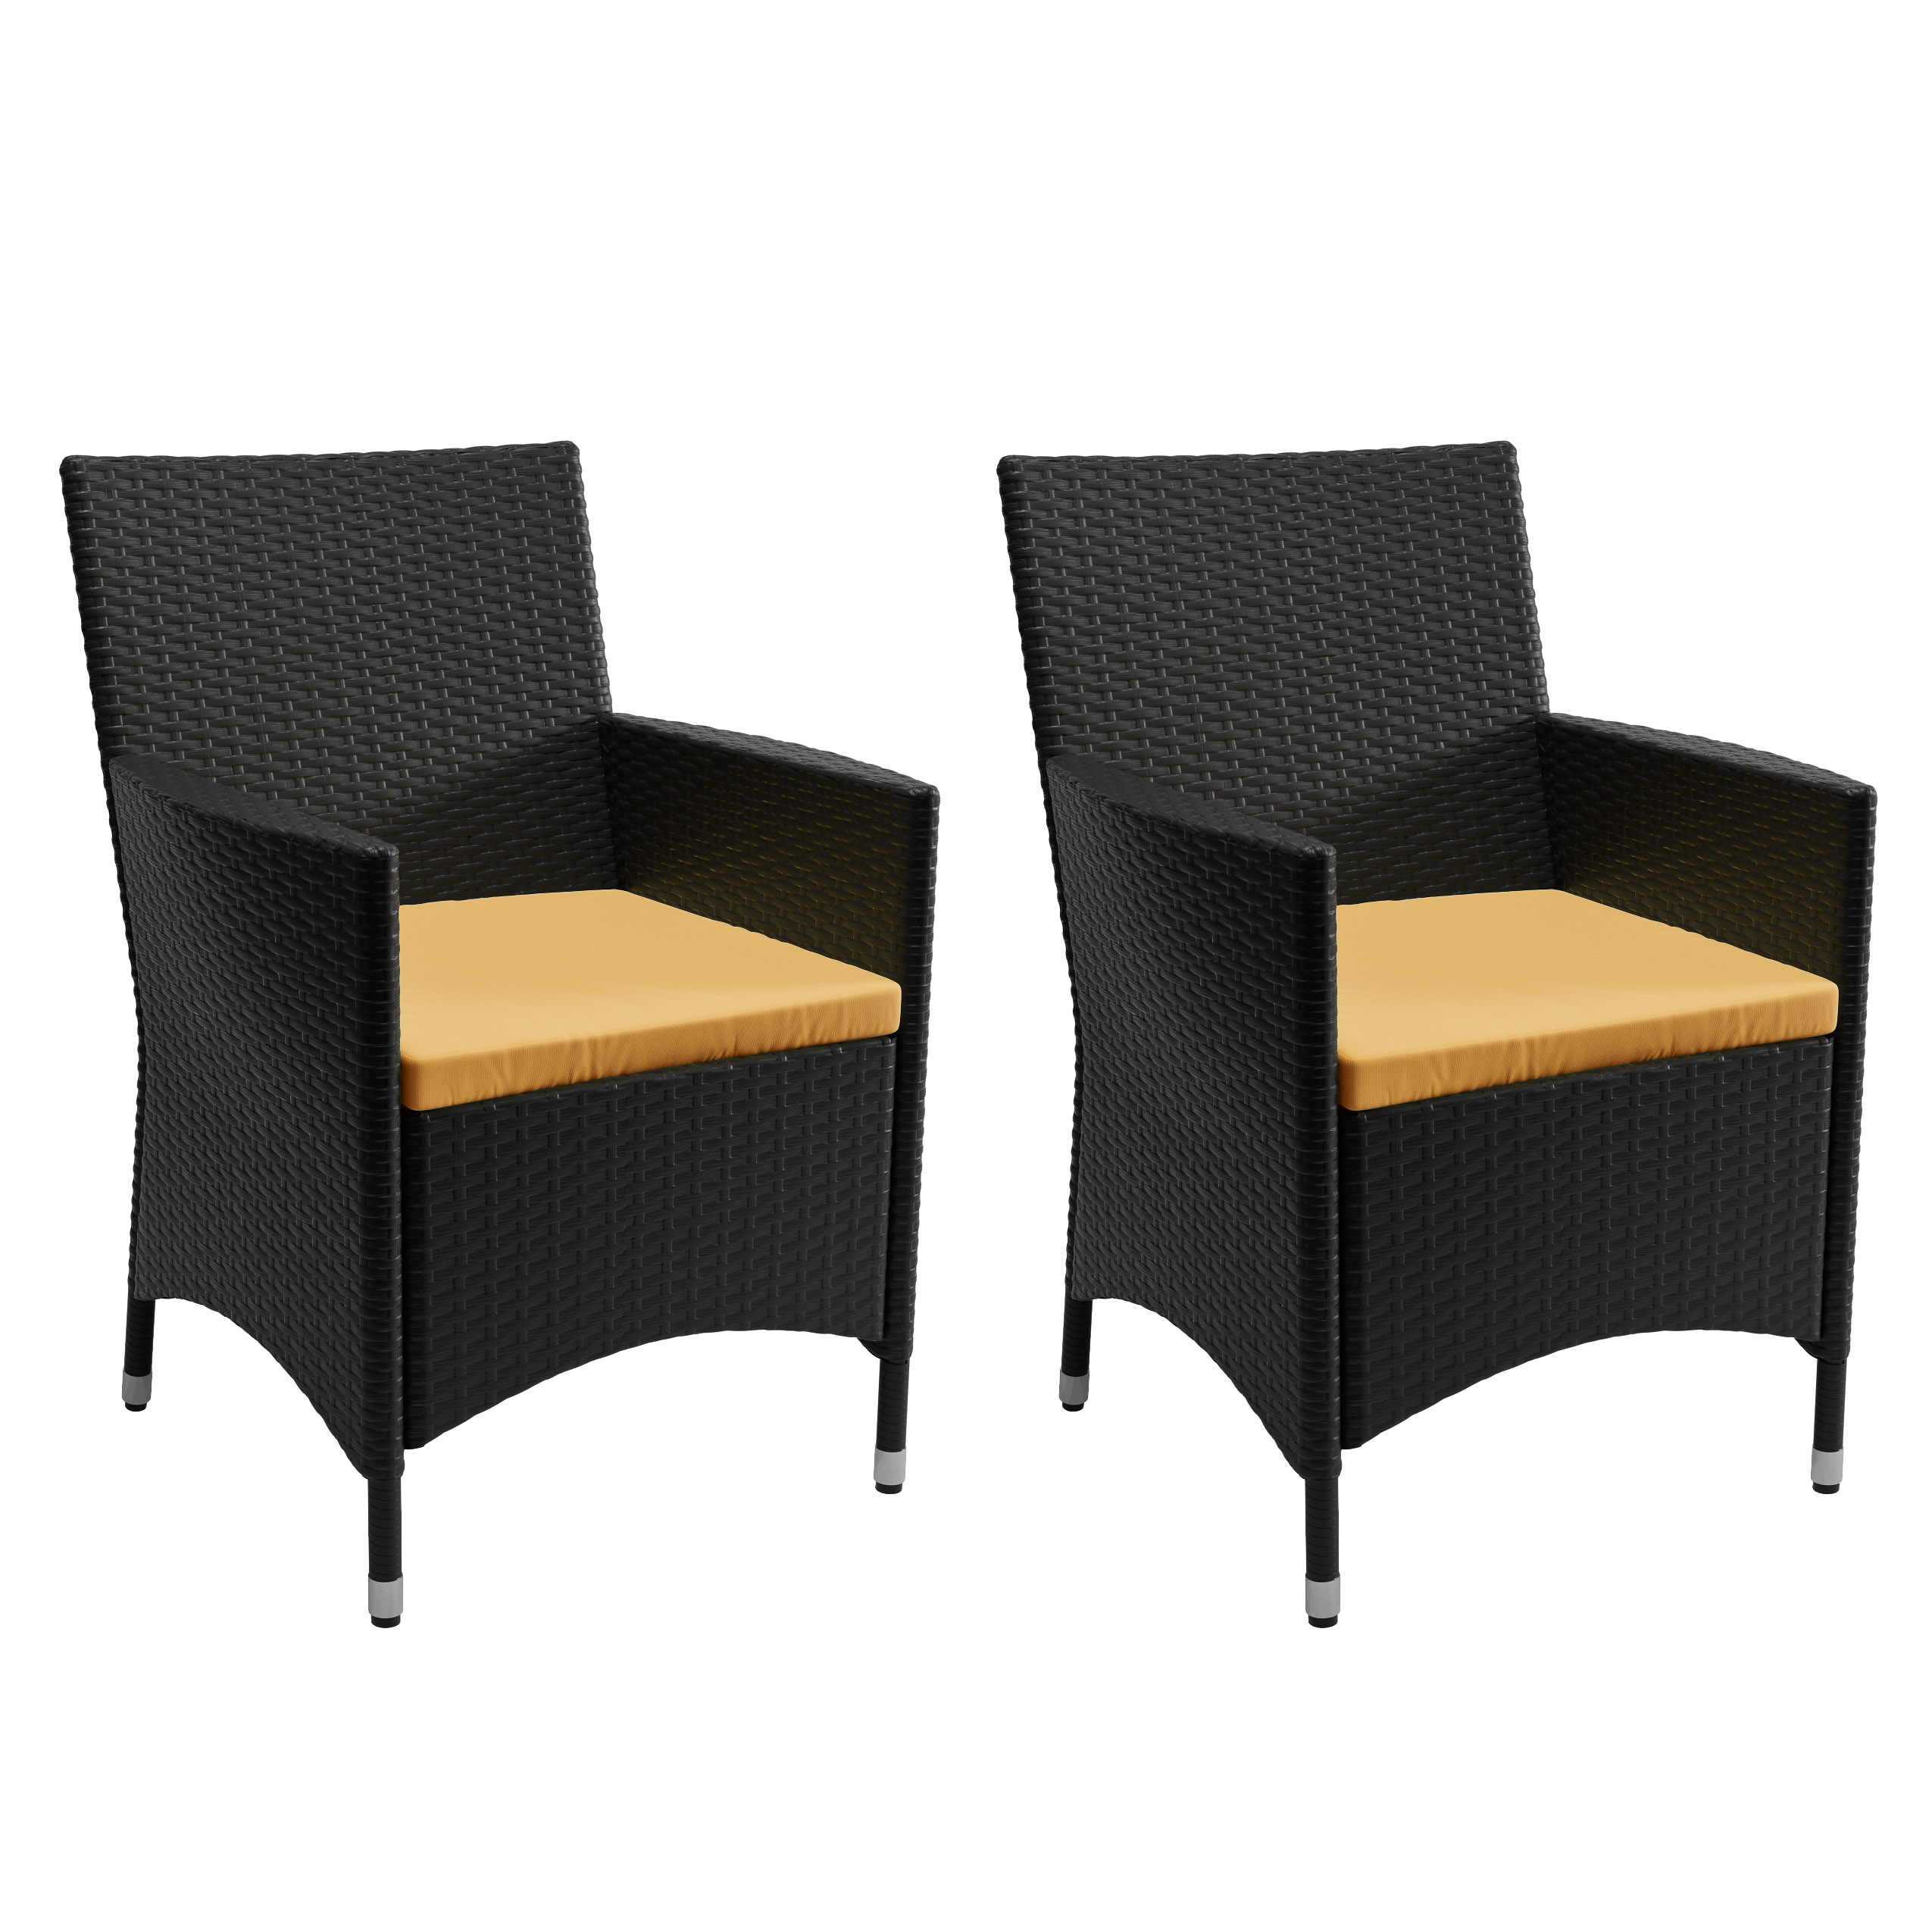 rope chair target office chairs phoenix arizona sonax cascade patio set shop your way online